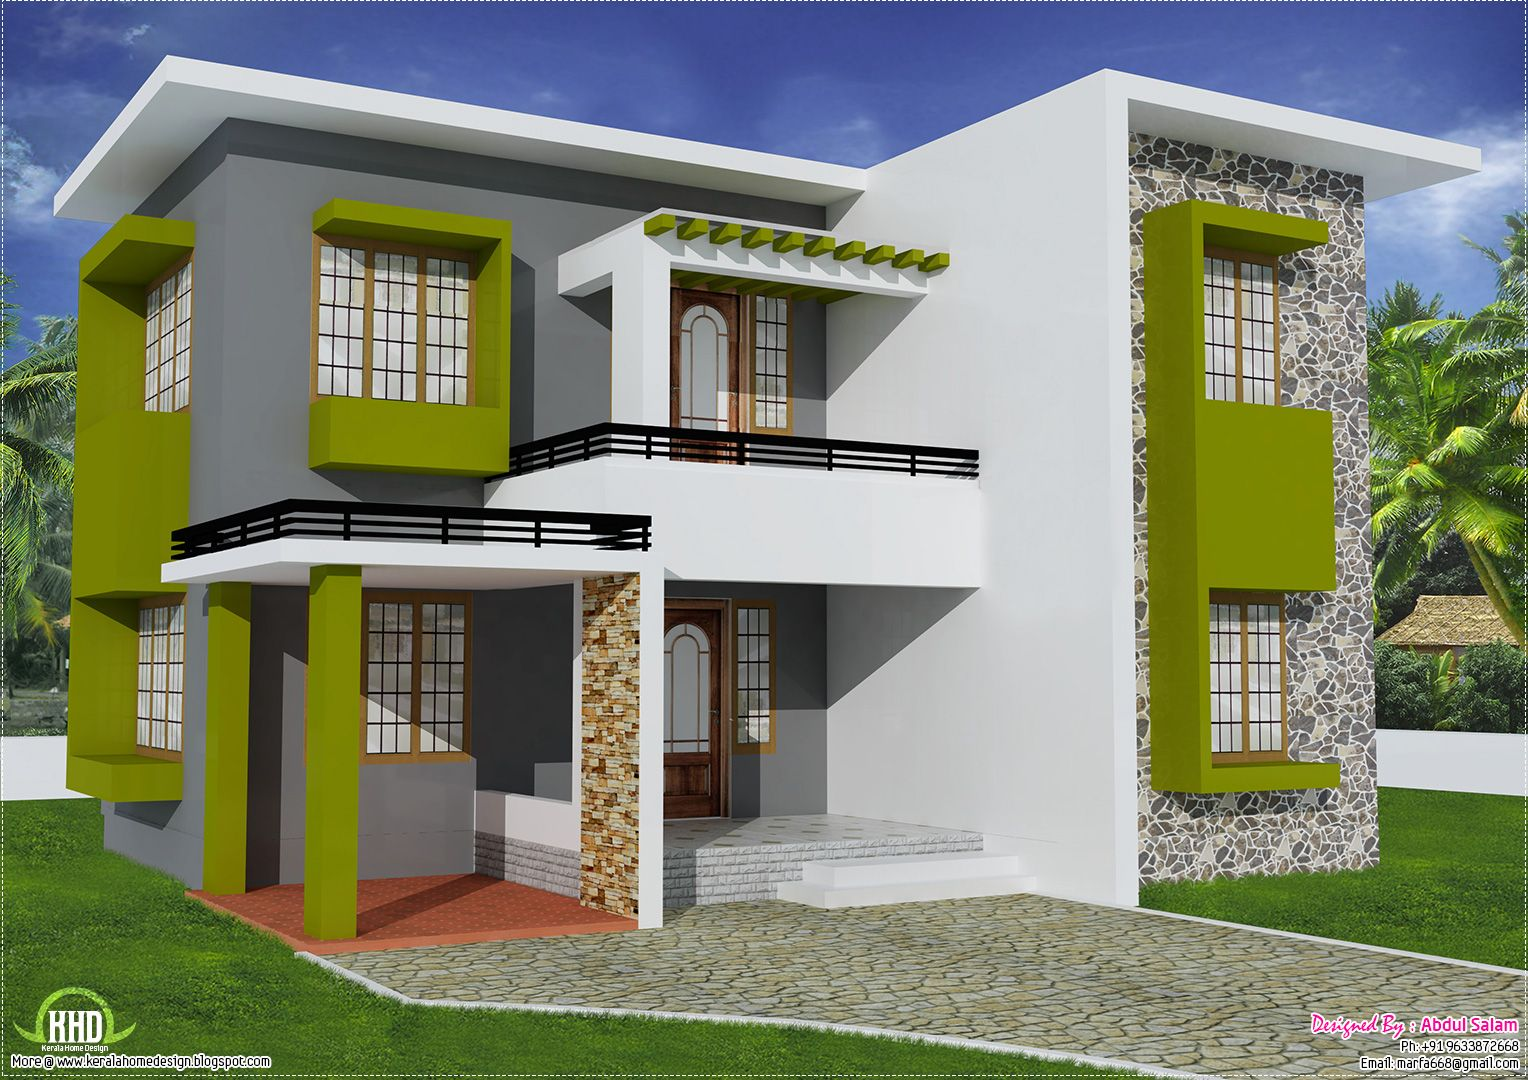 Sq feet flat roof home design house design plans roof for Apartment roof design